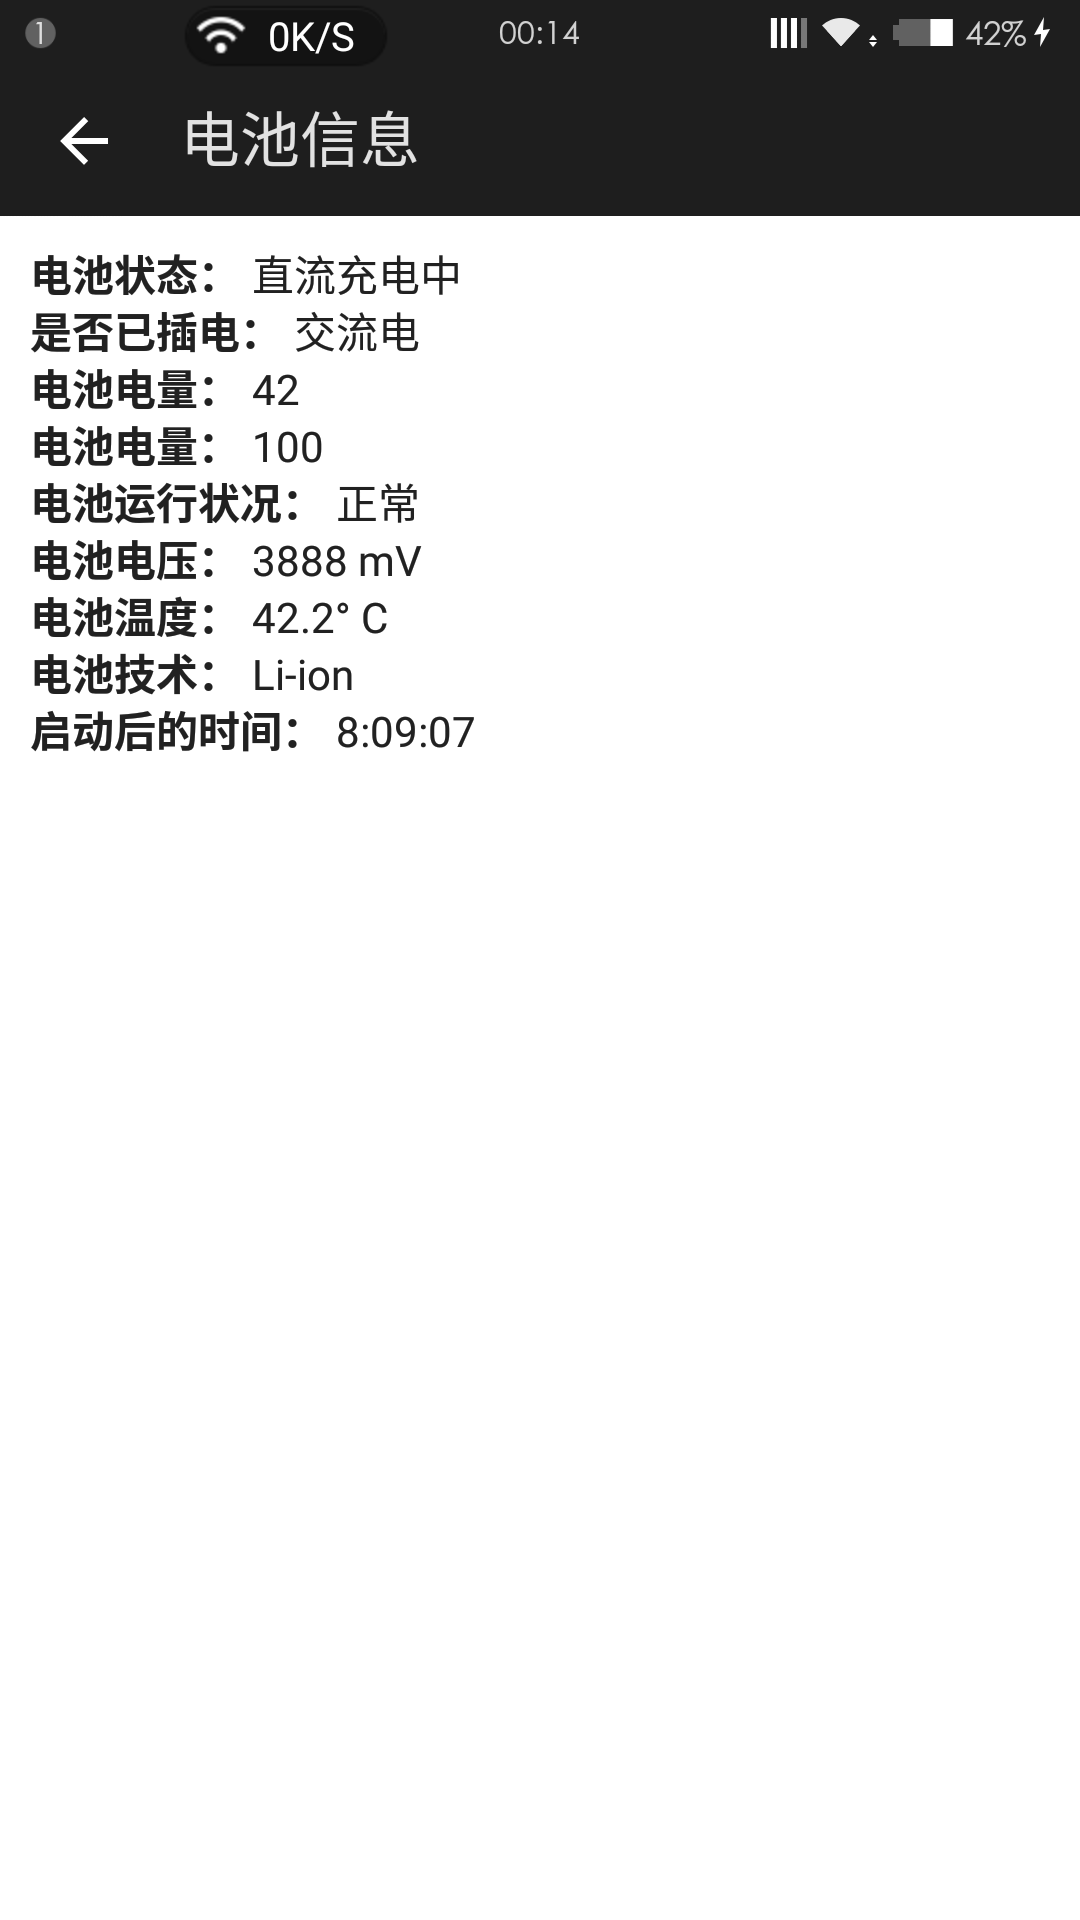 Screenshot_2015-08-26-00-14-46.png